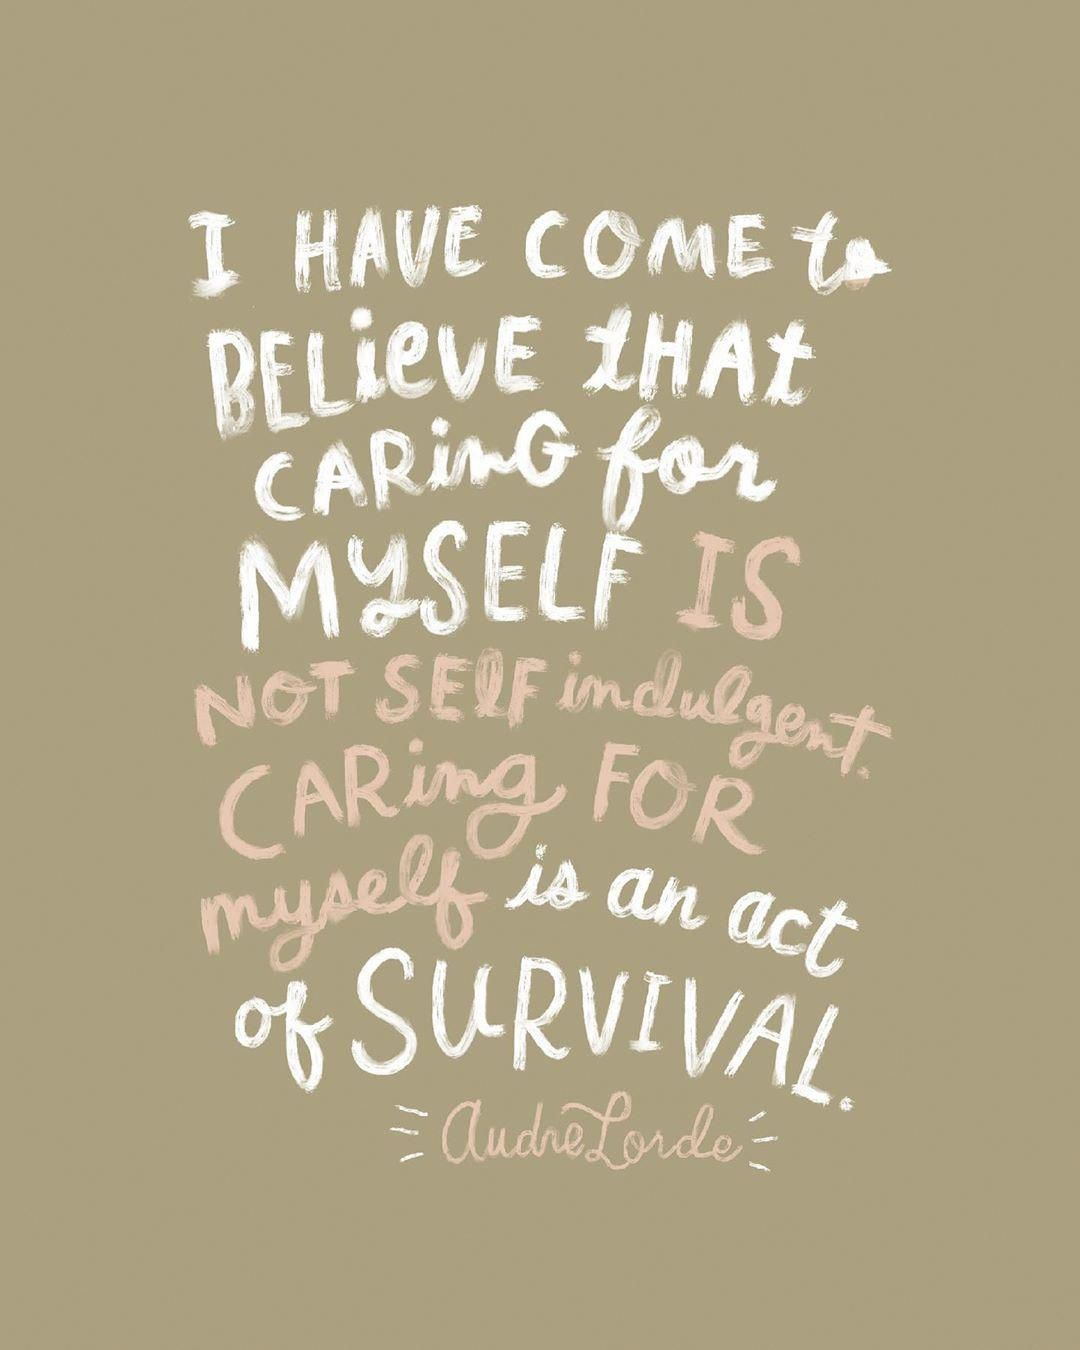 Survival Bushcraft Inspirational Quotes Words Self Love Quotes